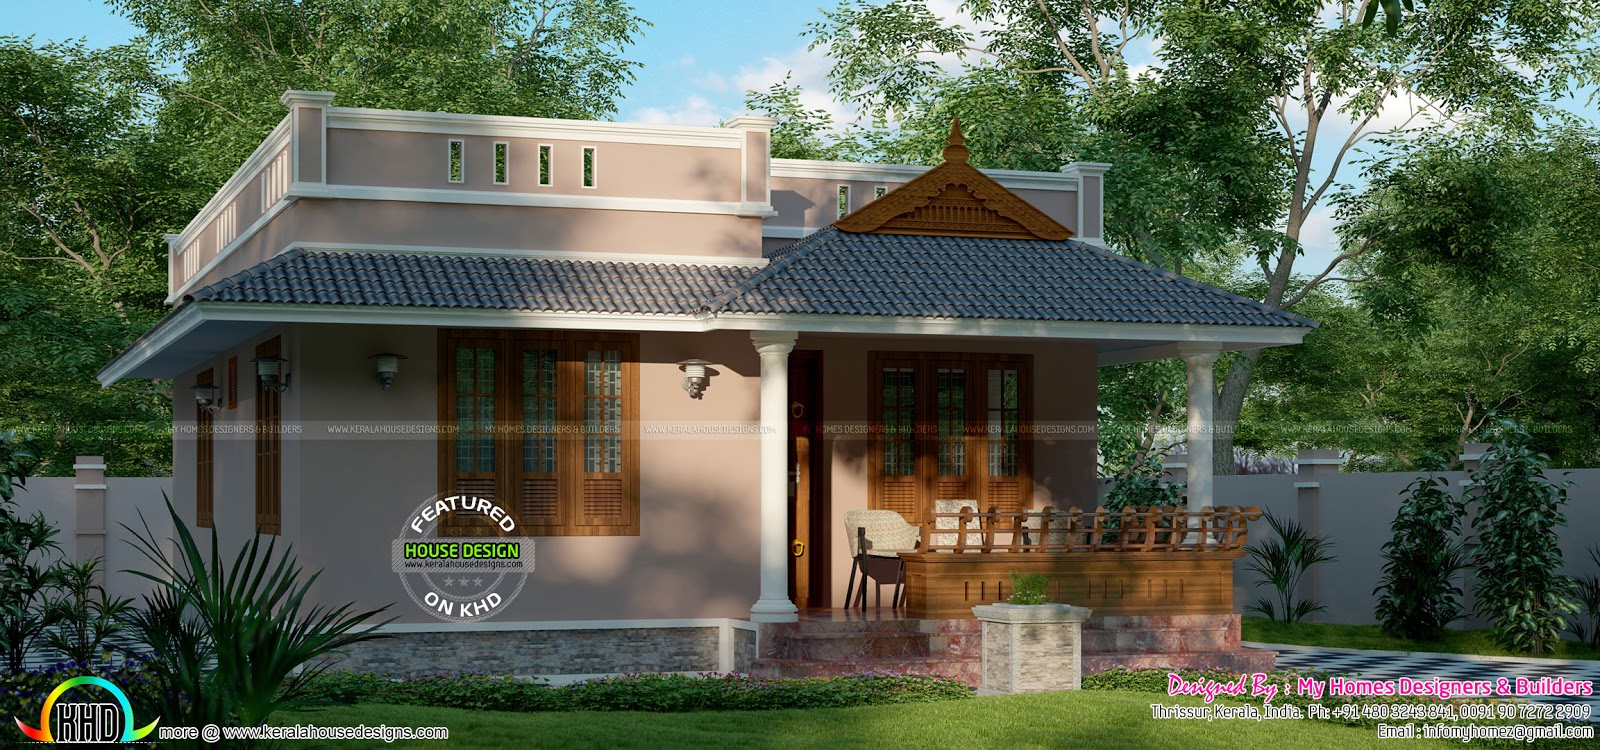 12 lakhs budget kerala home design kerala home design for House and home plans